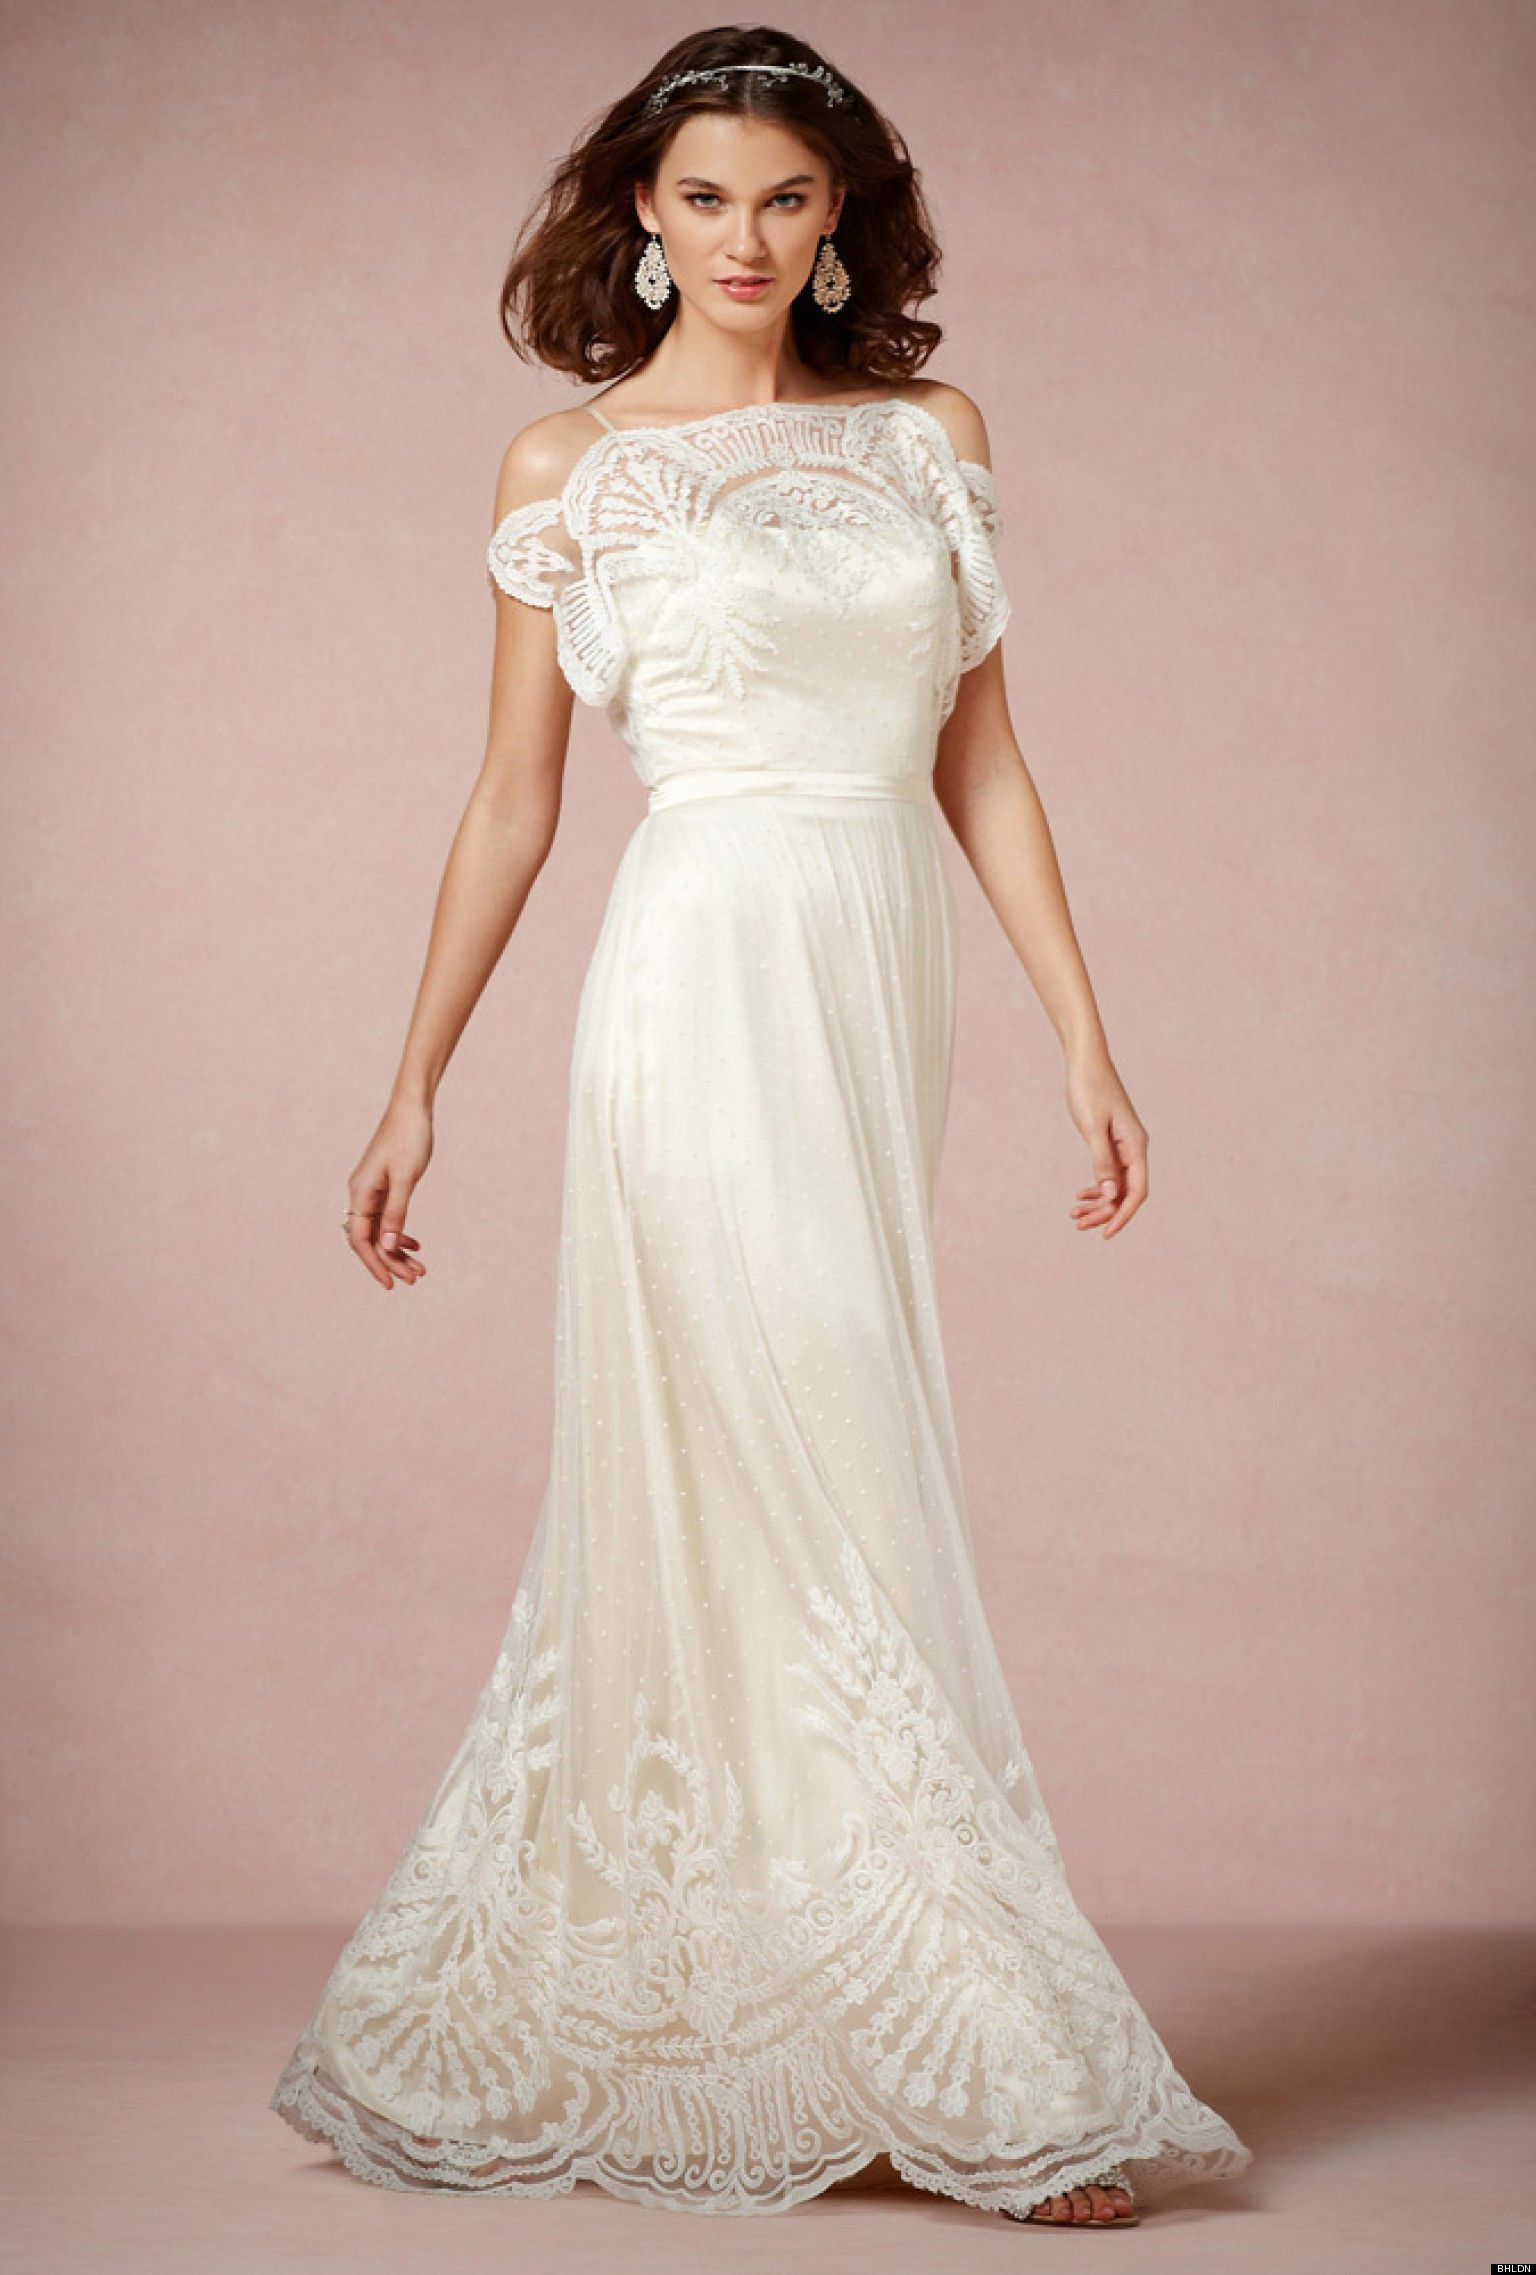 Plus Size Wedding Dresses For Women Over 50 Size12